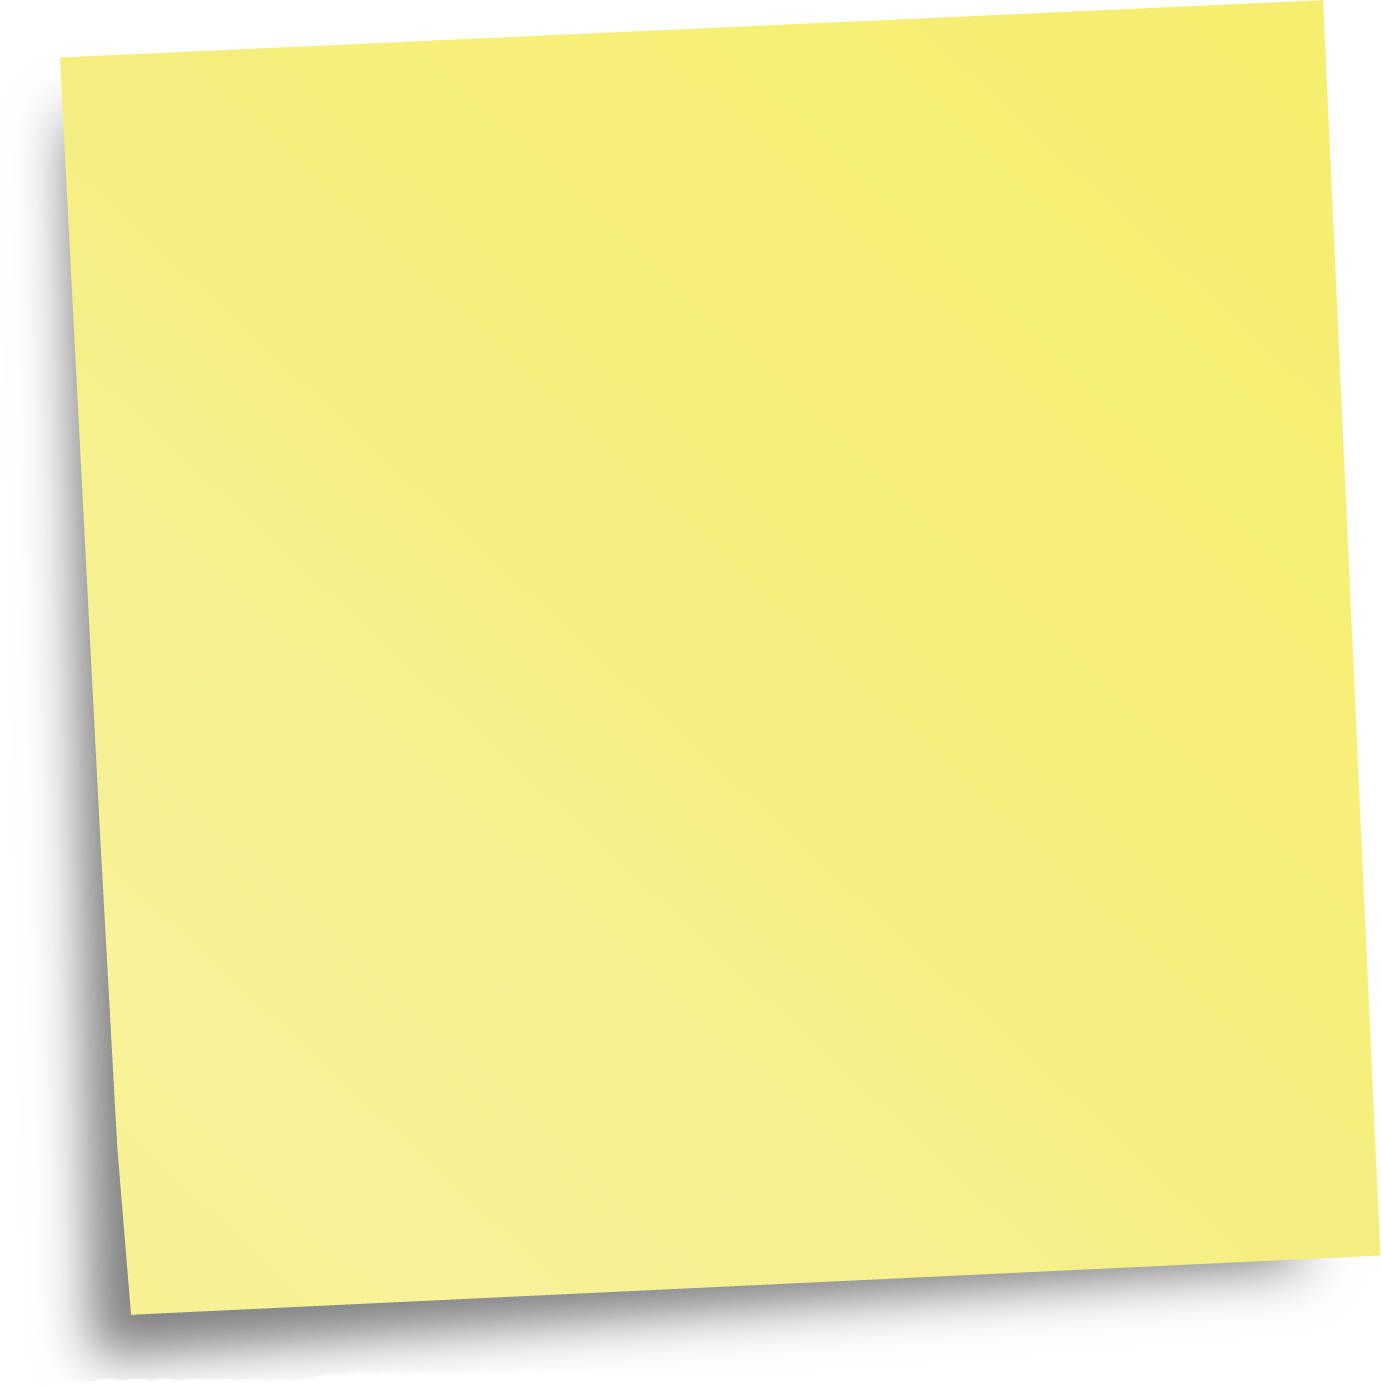 Yellow Sticky Notes Png Image Sticky Notes Yellow Sticky Notes Sticky